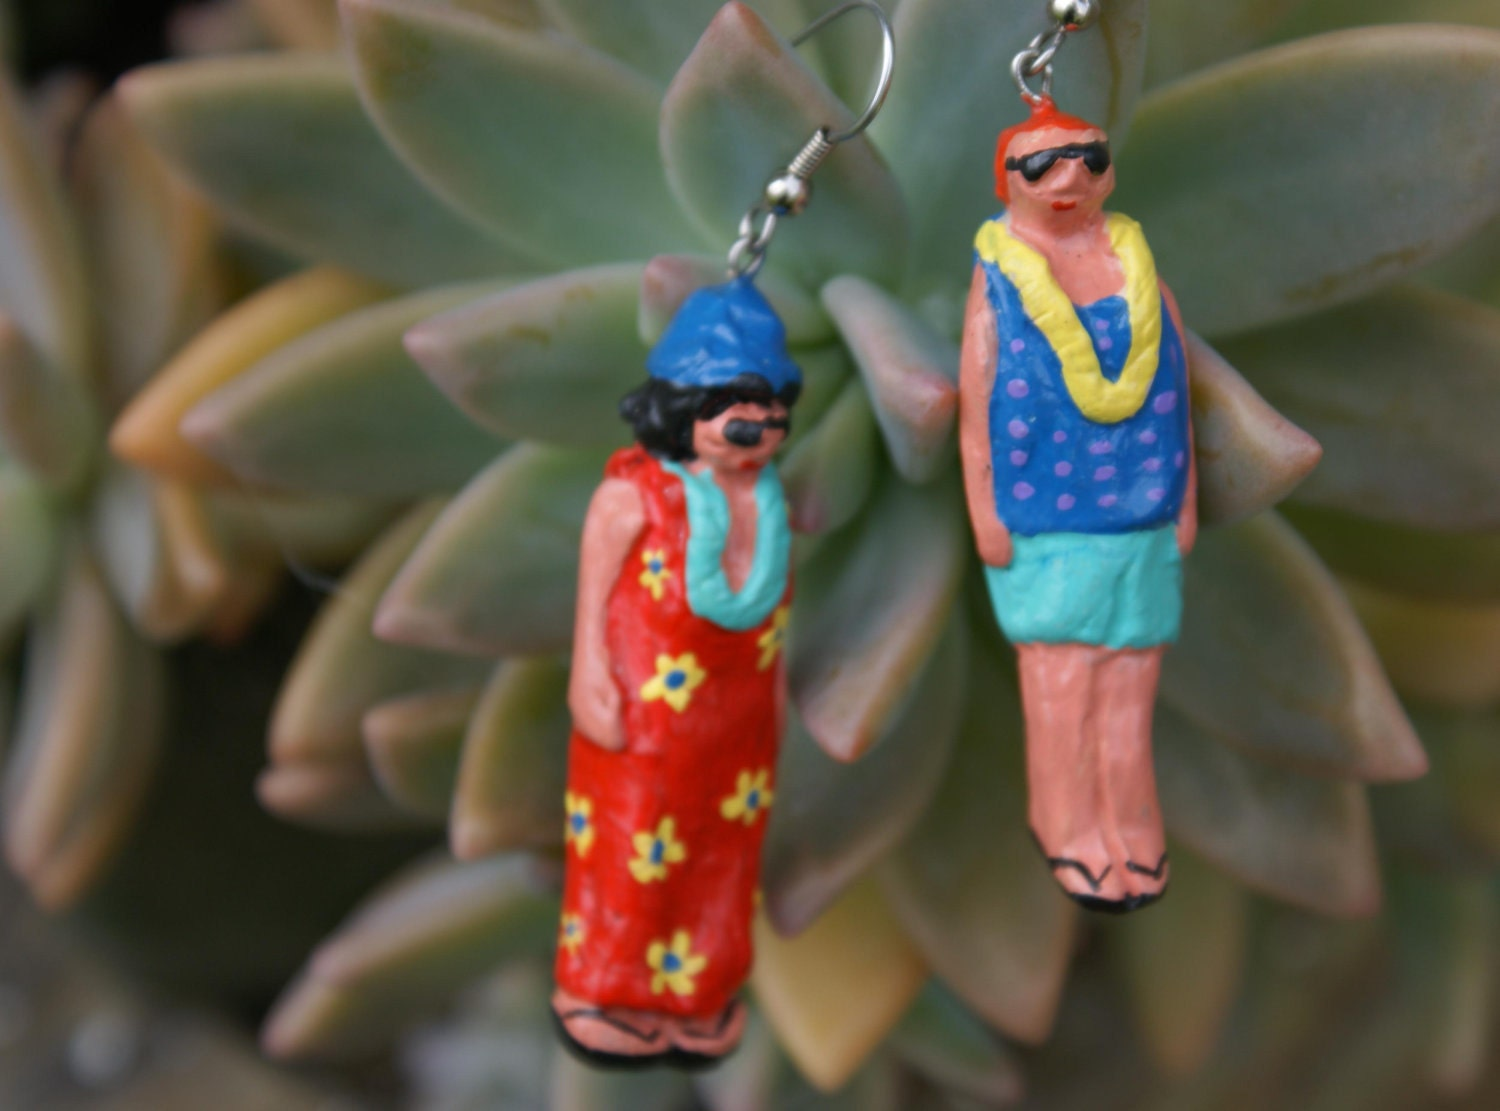 The Accidental Hawaiian Tourist Handmade Ugly Earrings